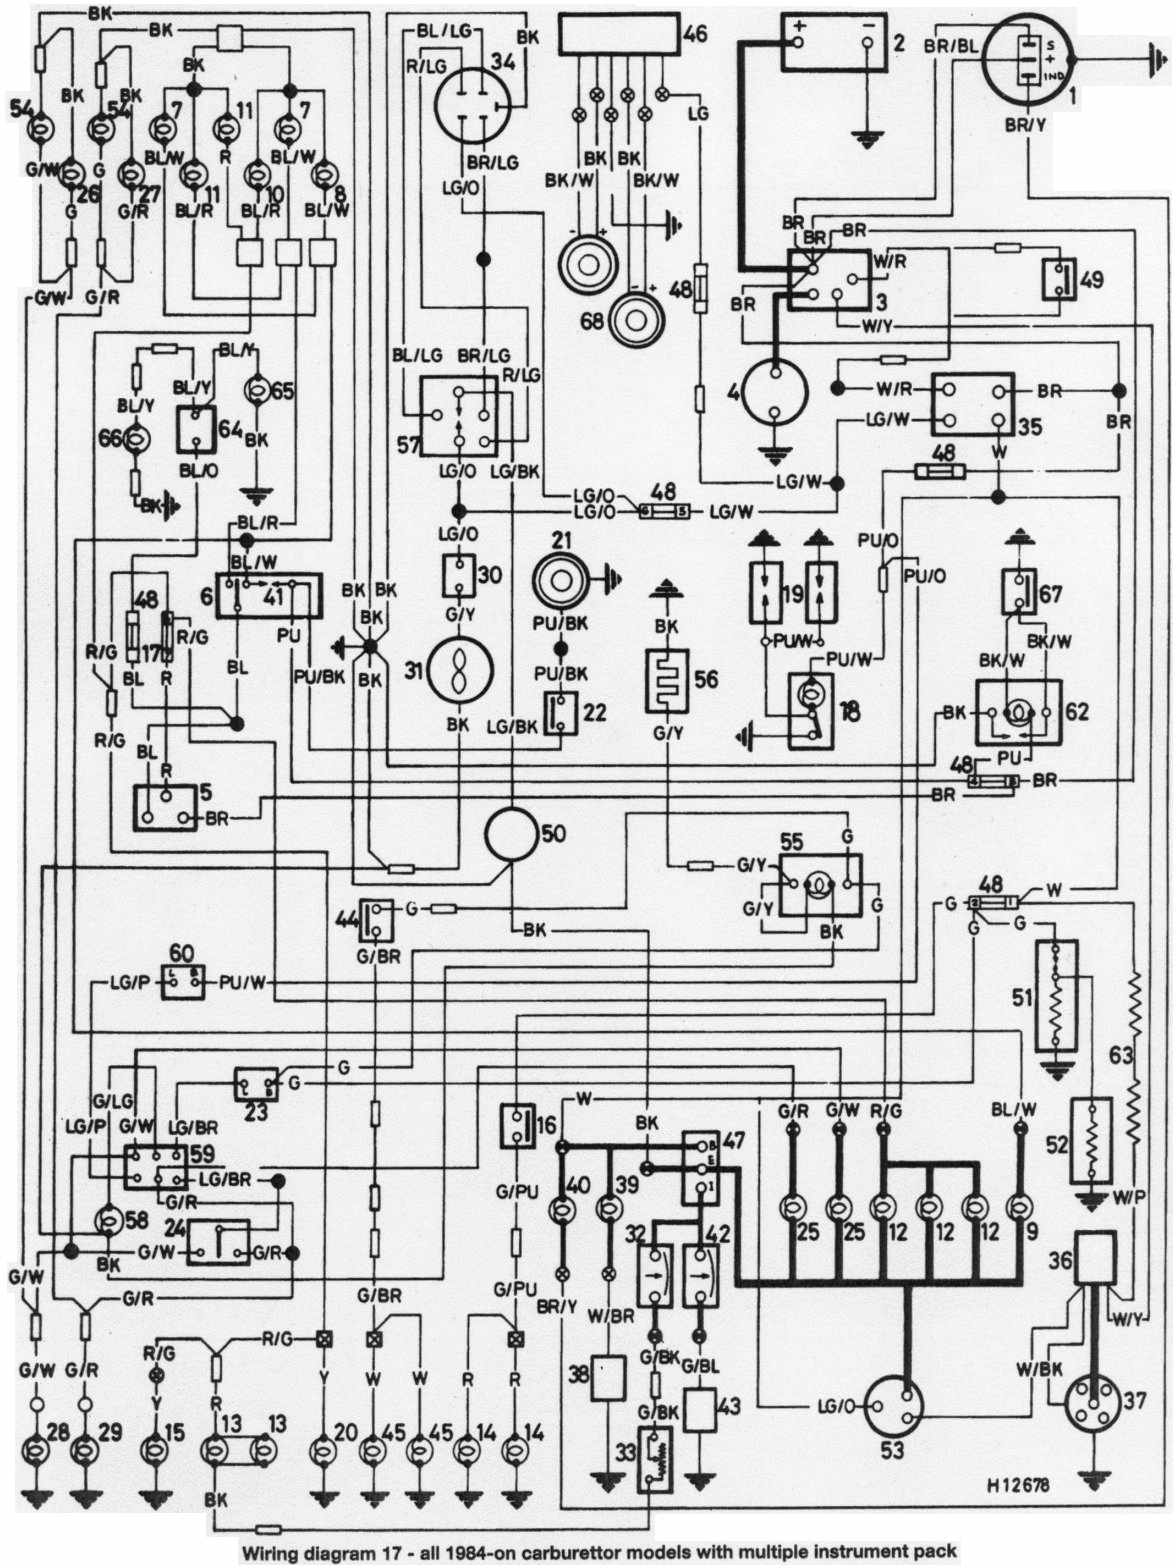 Old Fashioned E36 Convertible Wiring Diagram Model - Wiring Diagram ...